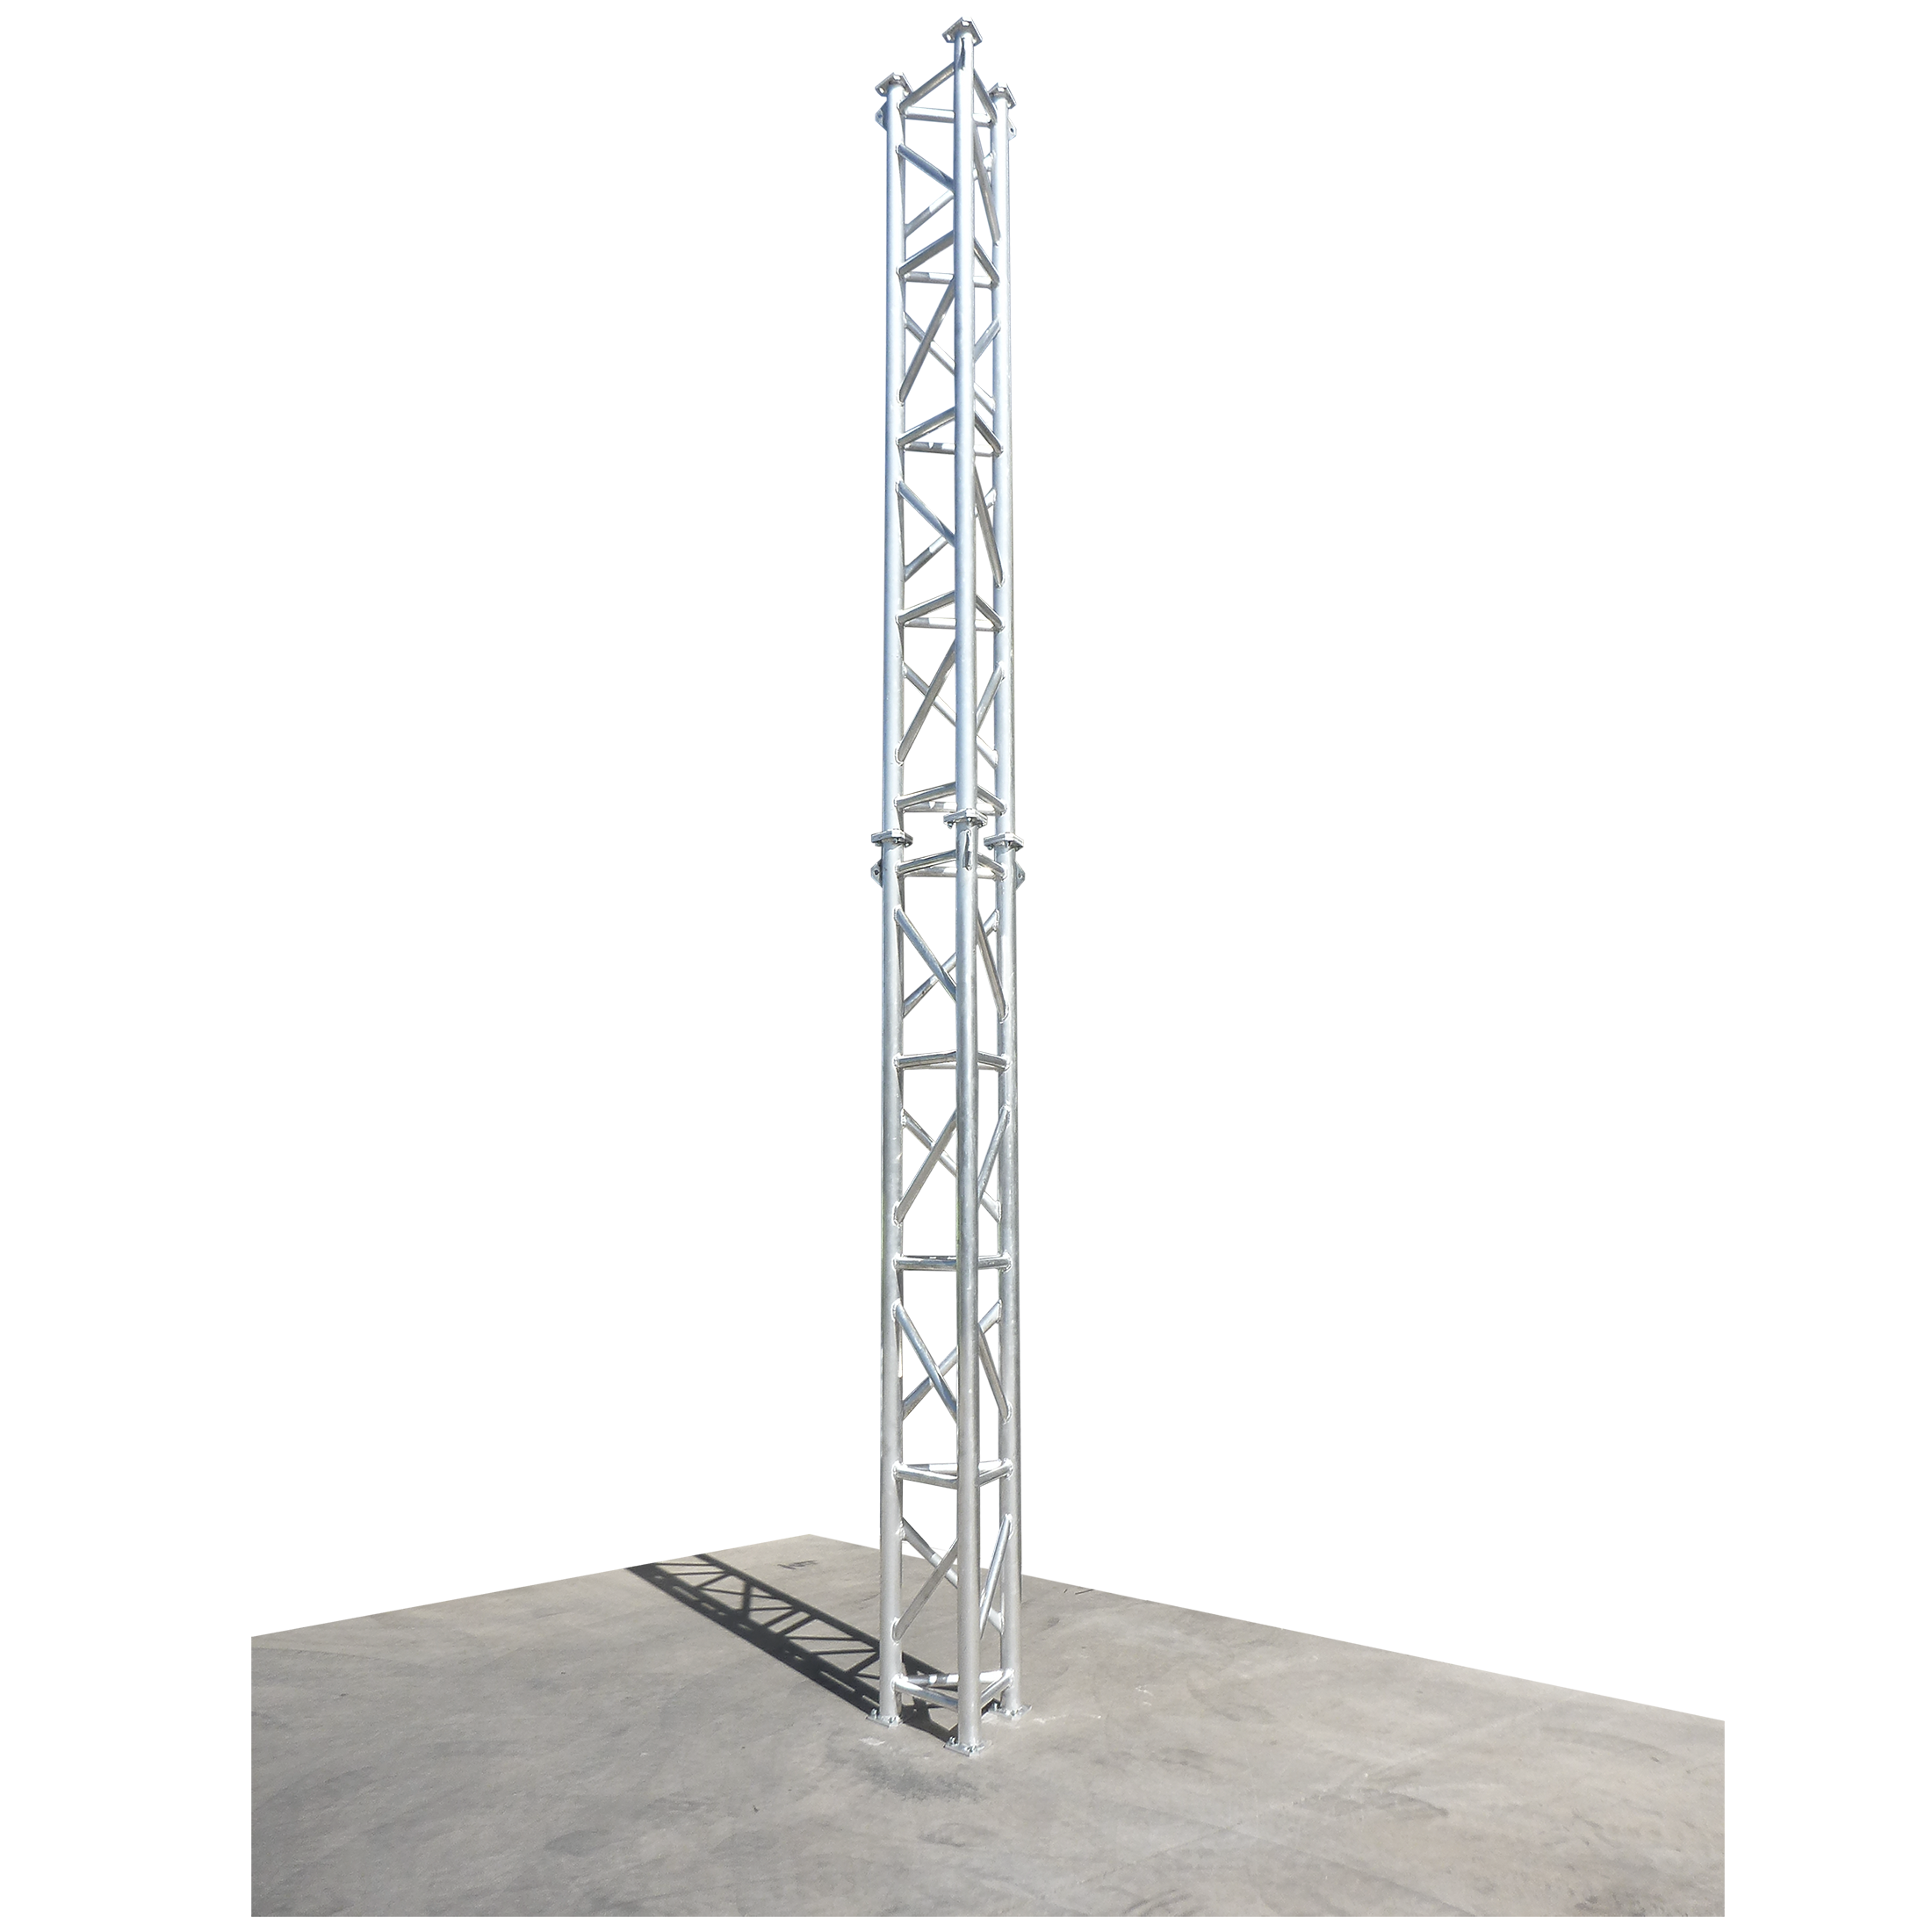 Free Standing Trellis: Self-Supporting Towers